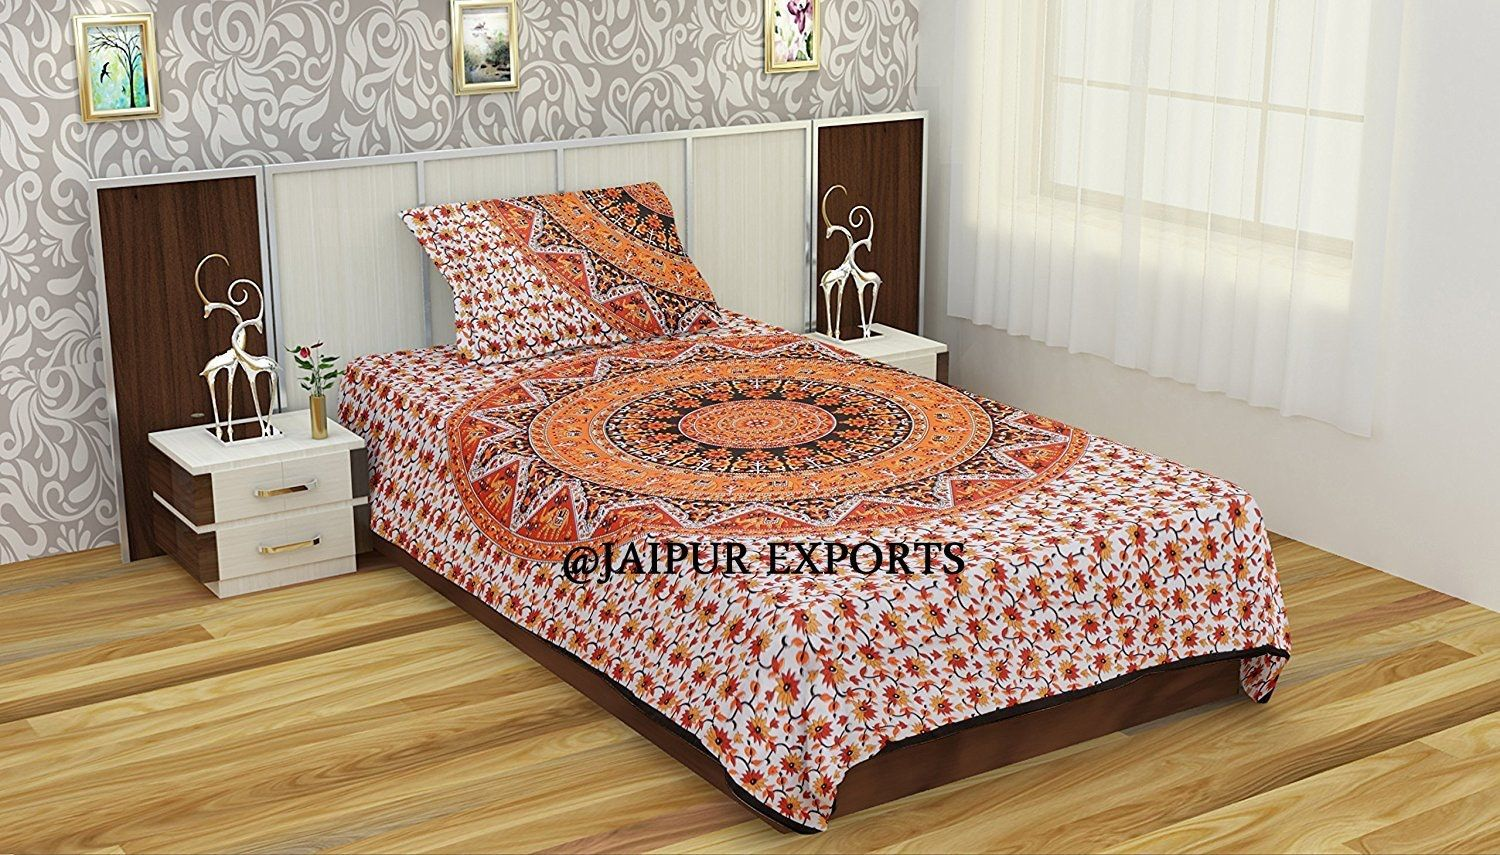 SKU 5106 Twin Duvet Cover by JAIPUR EXPORTS Material